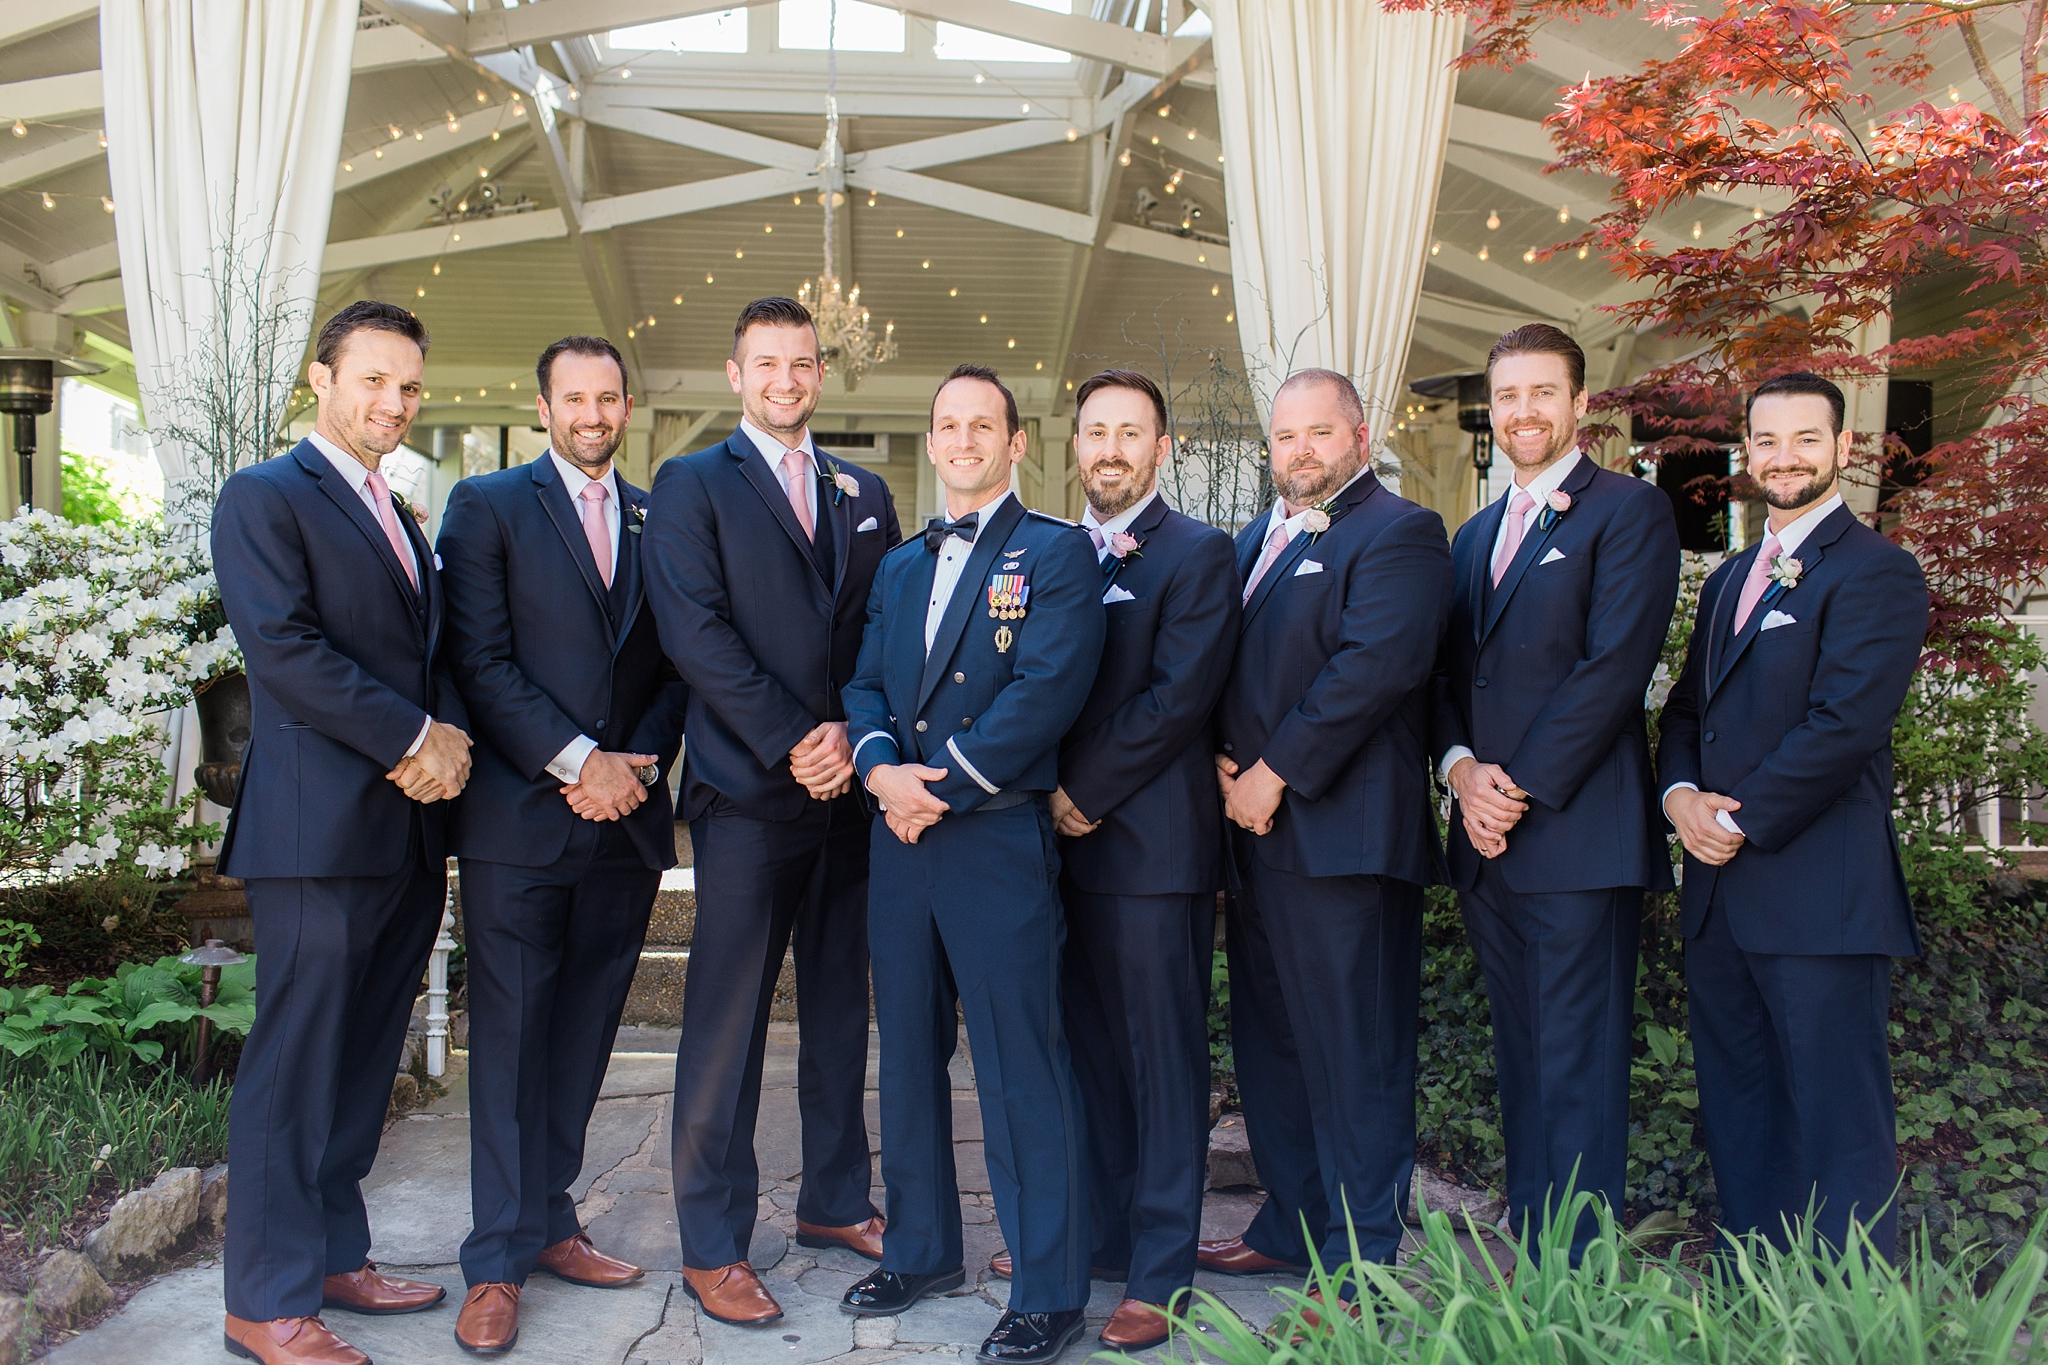 cjs-square-franklin-tn-groomsmen.jpg